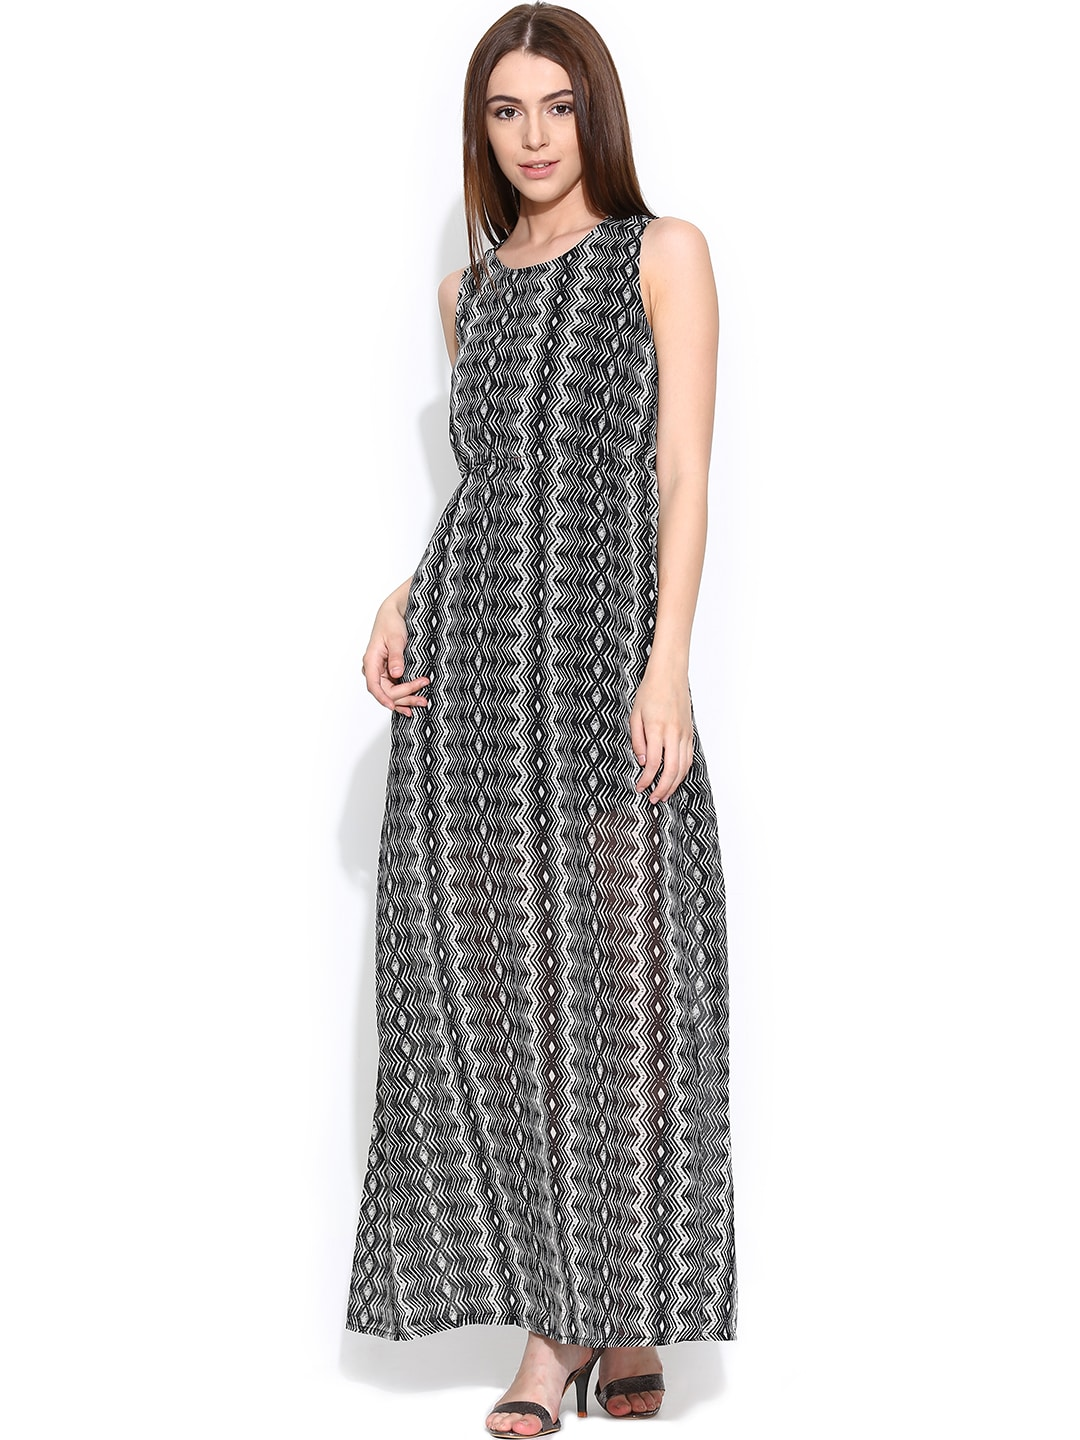 9fb90a4b66 Only Women Dresses Price List in India 1 April 2019